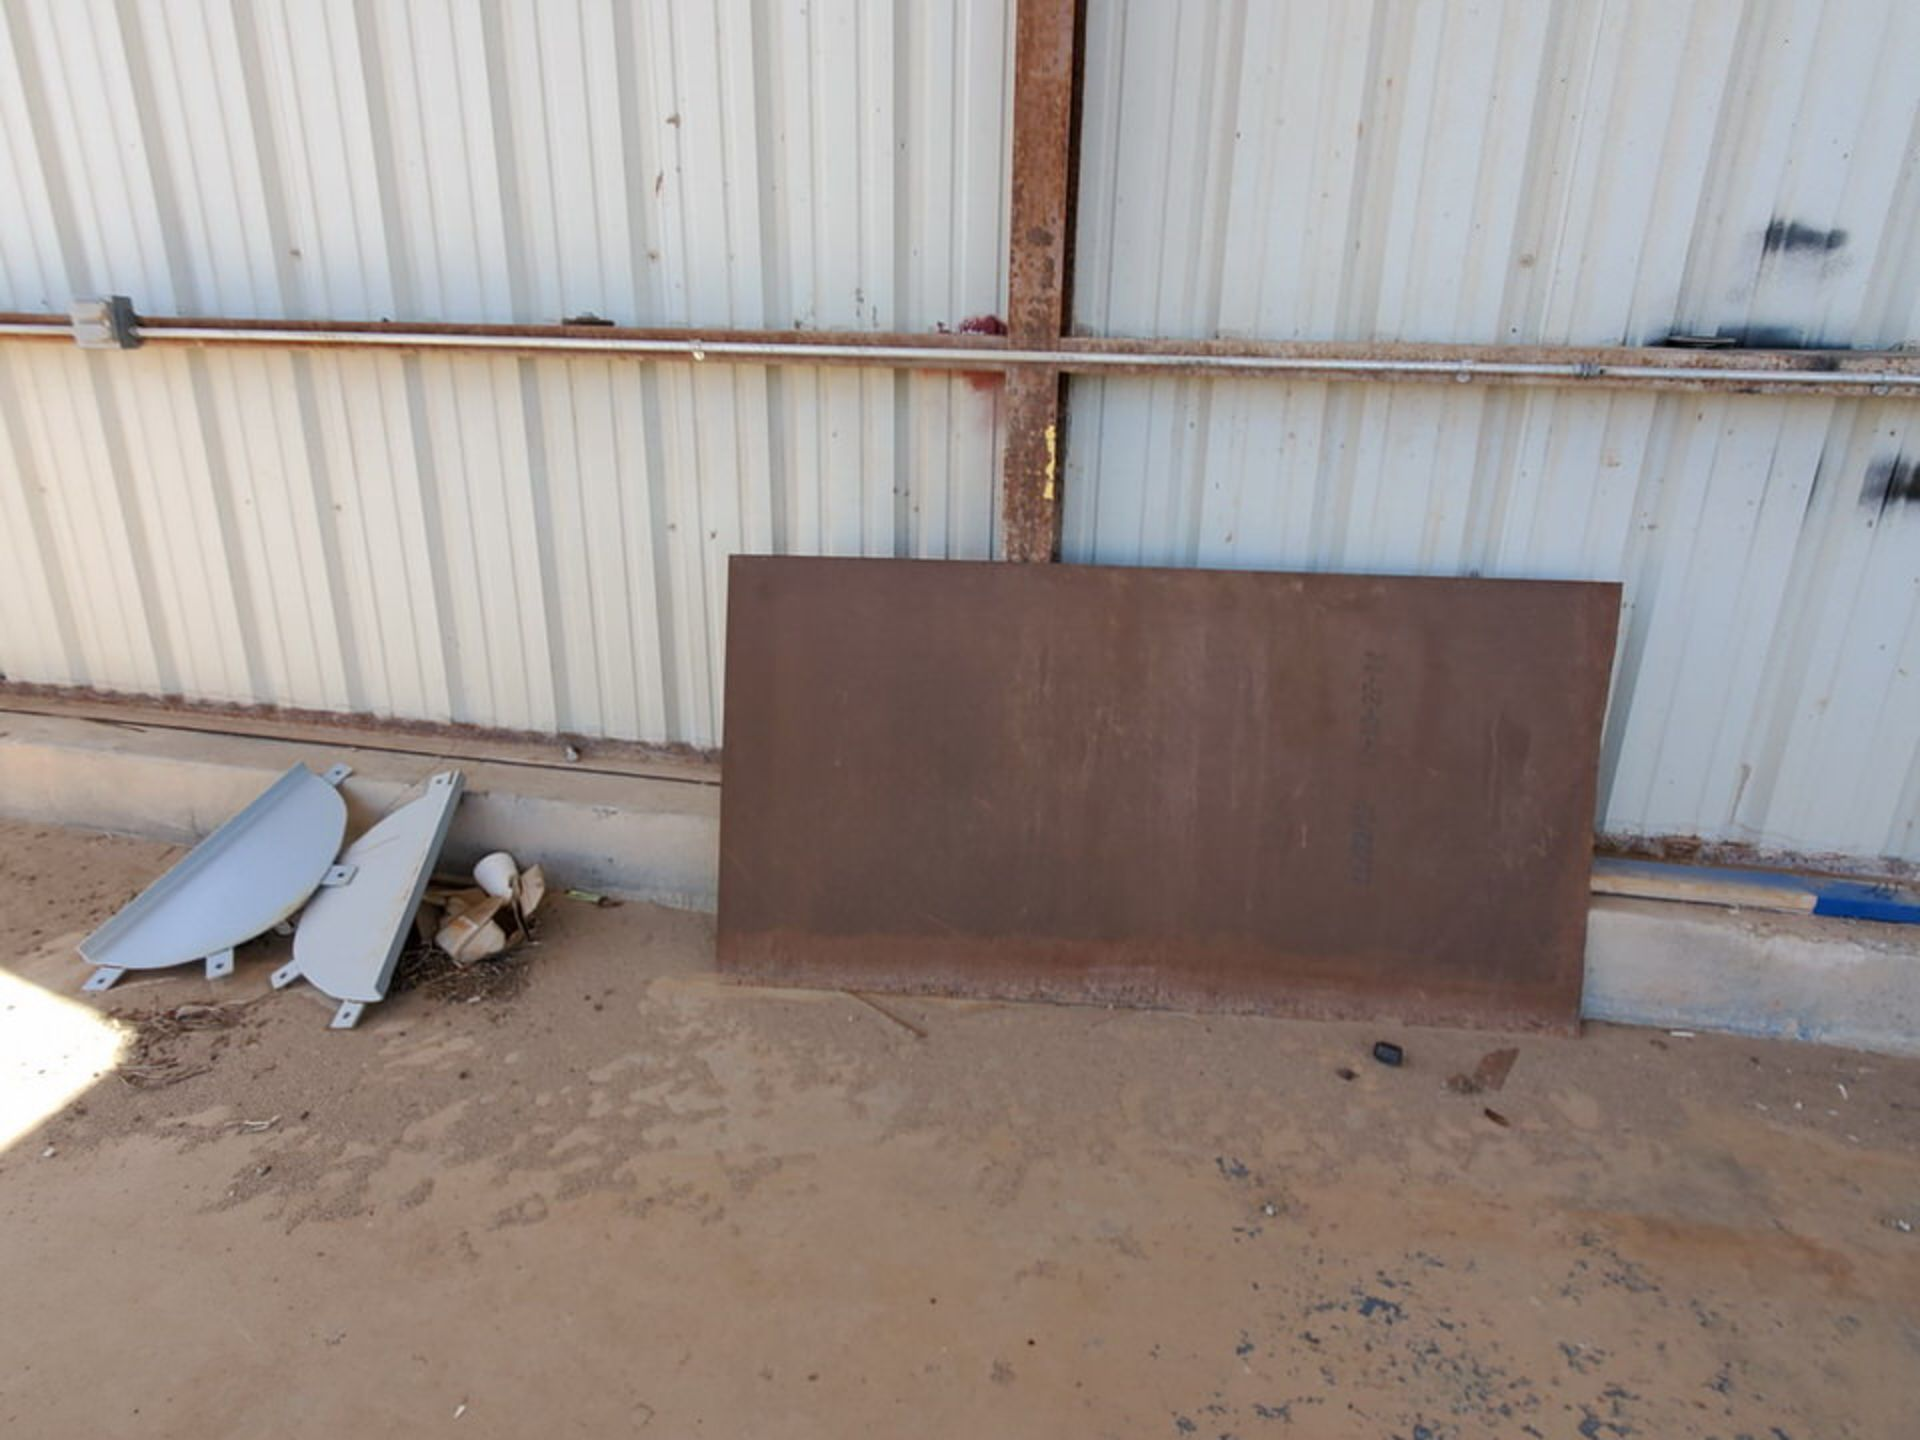 Misc. Matl. To Include But Not Limited To: Lift Basket, Welding Table, Sheet Metal, Ele Wire, Rope - Image 11 of 13